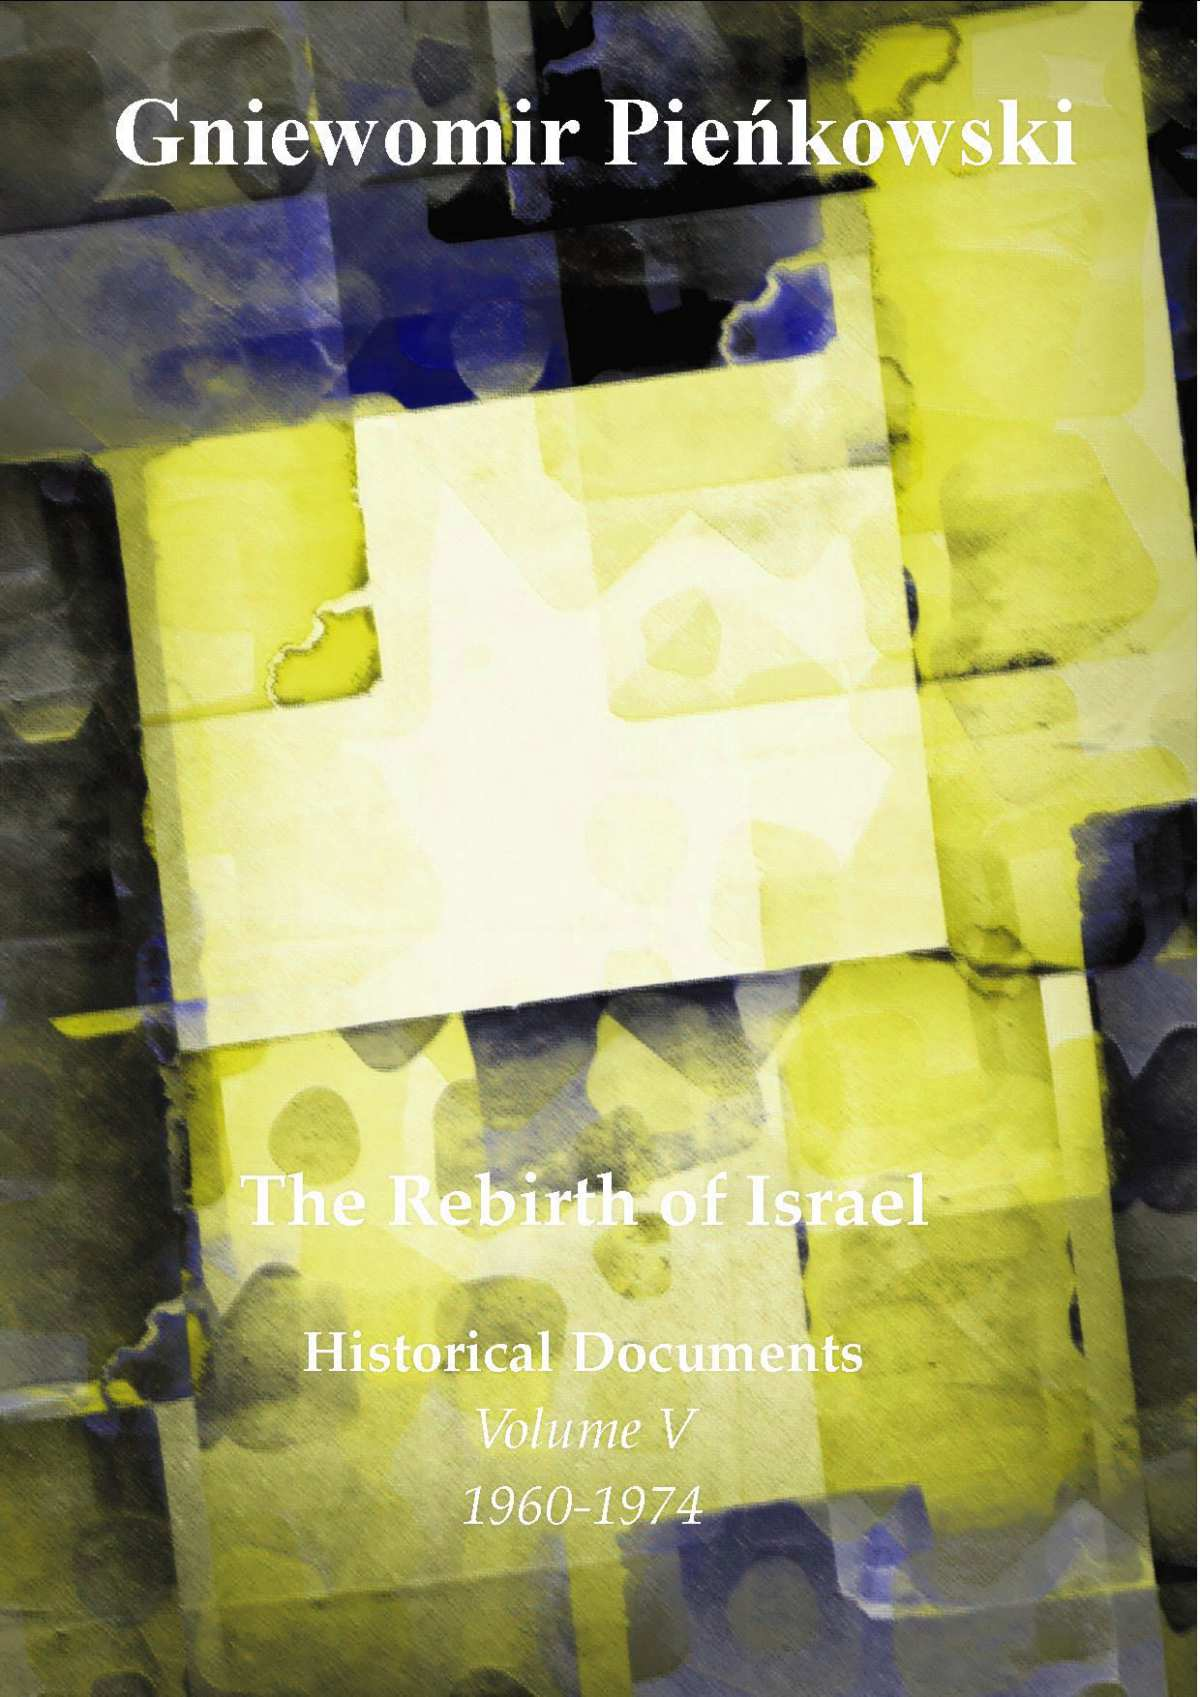 The Rebirth of Israel. Historical Documents. Volume V: 1960-1974 - Ebook (Książka PDF) do pobrania w formacie PDF